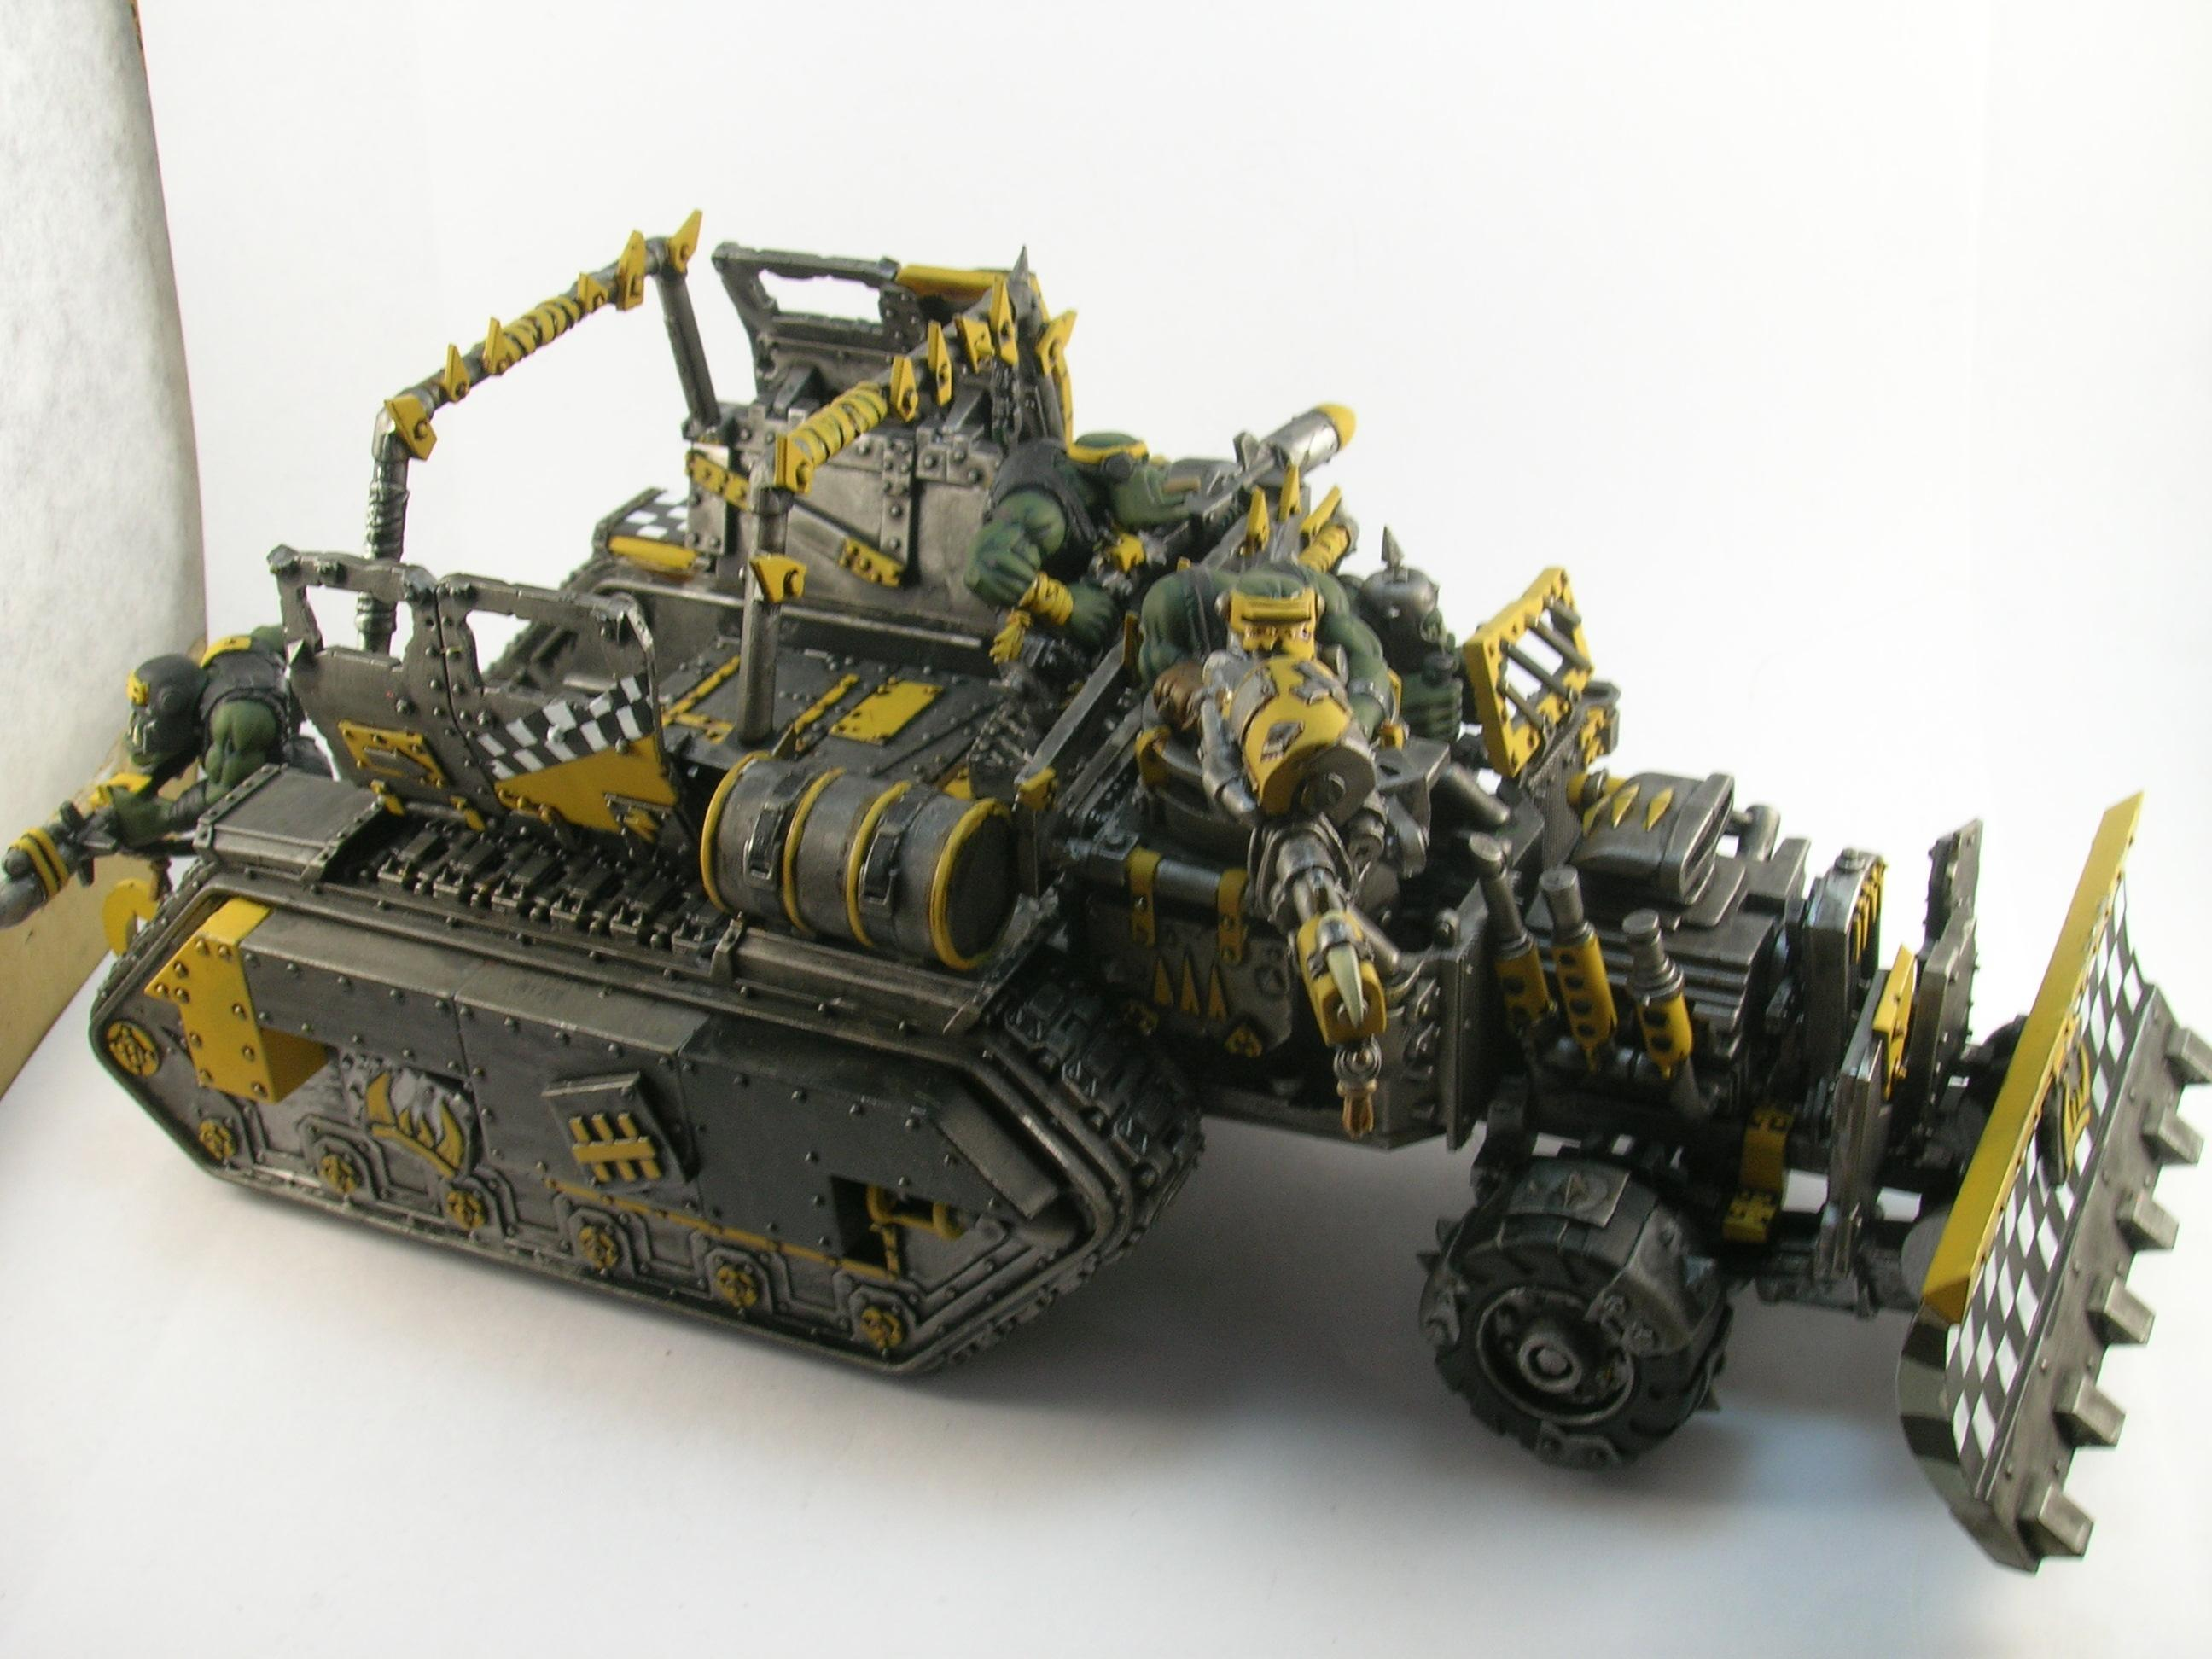 Bad Moons, Looted Wagon, Orks, Warhammer 40,000